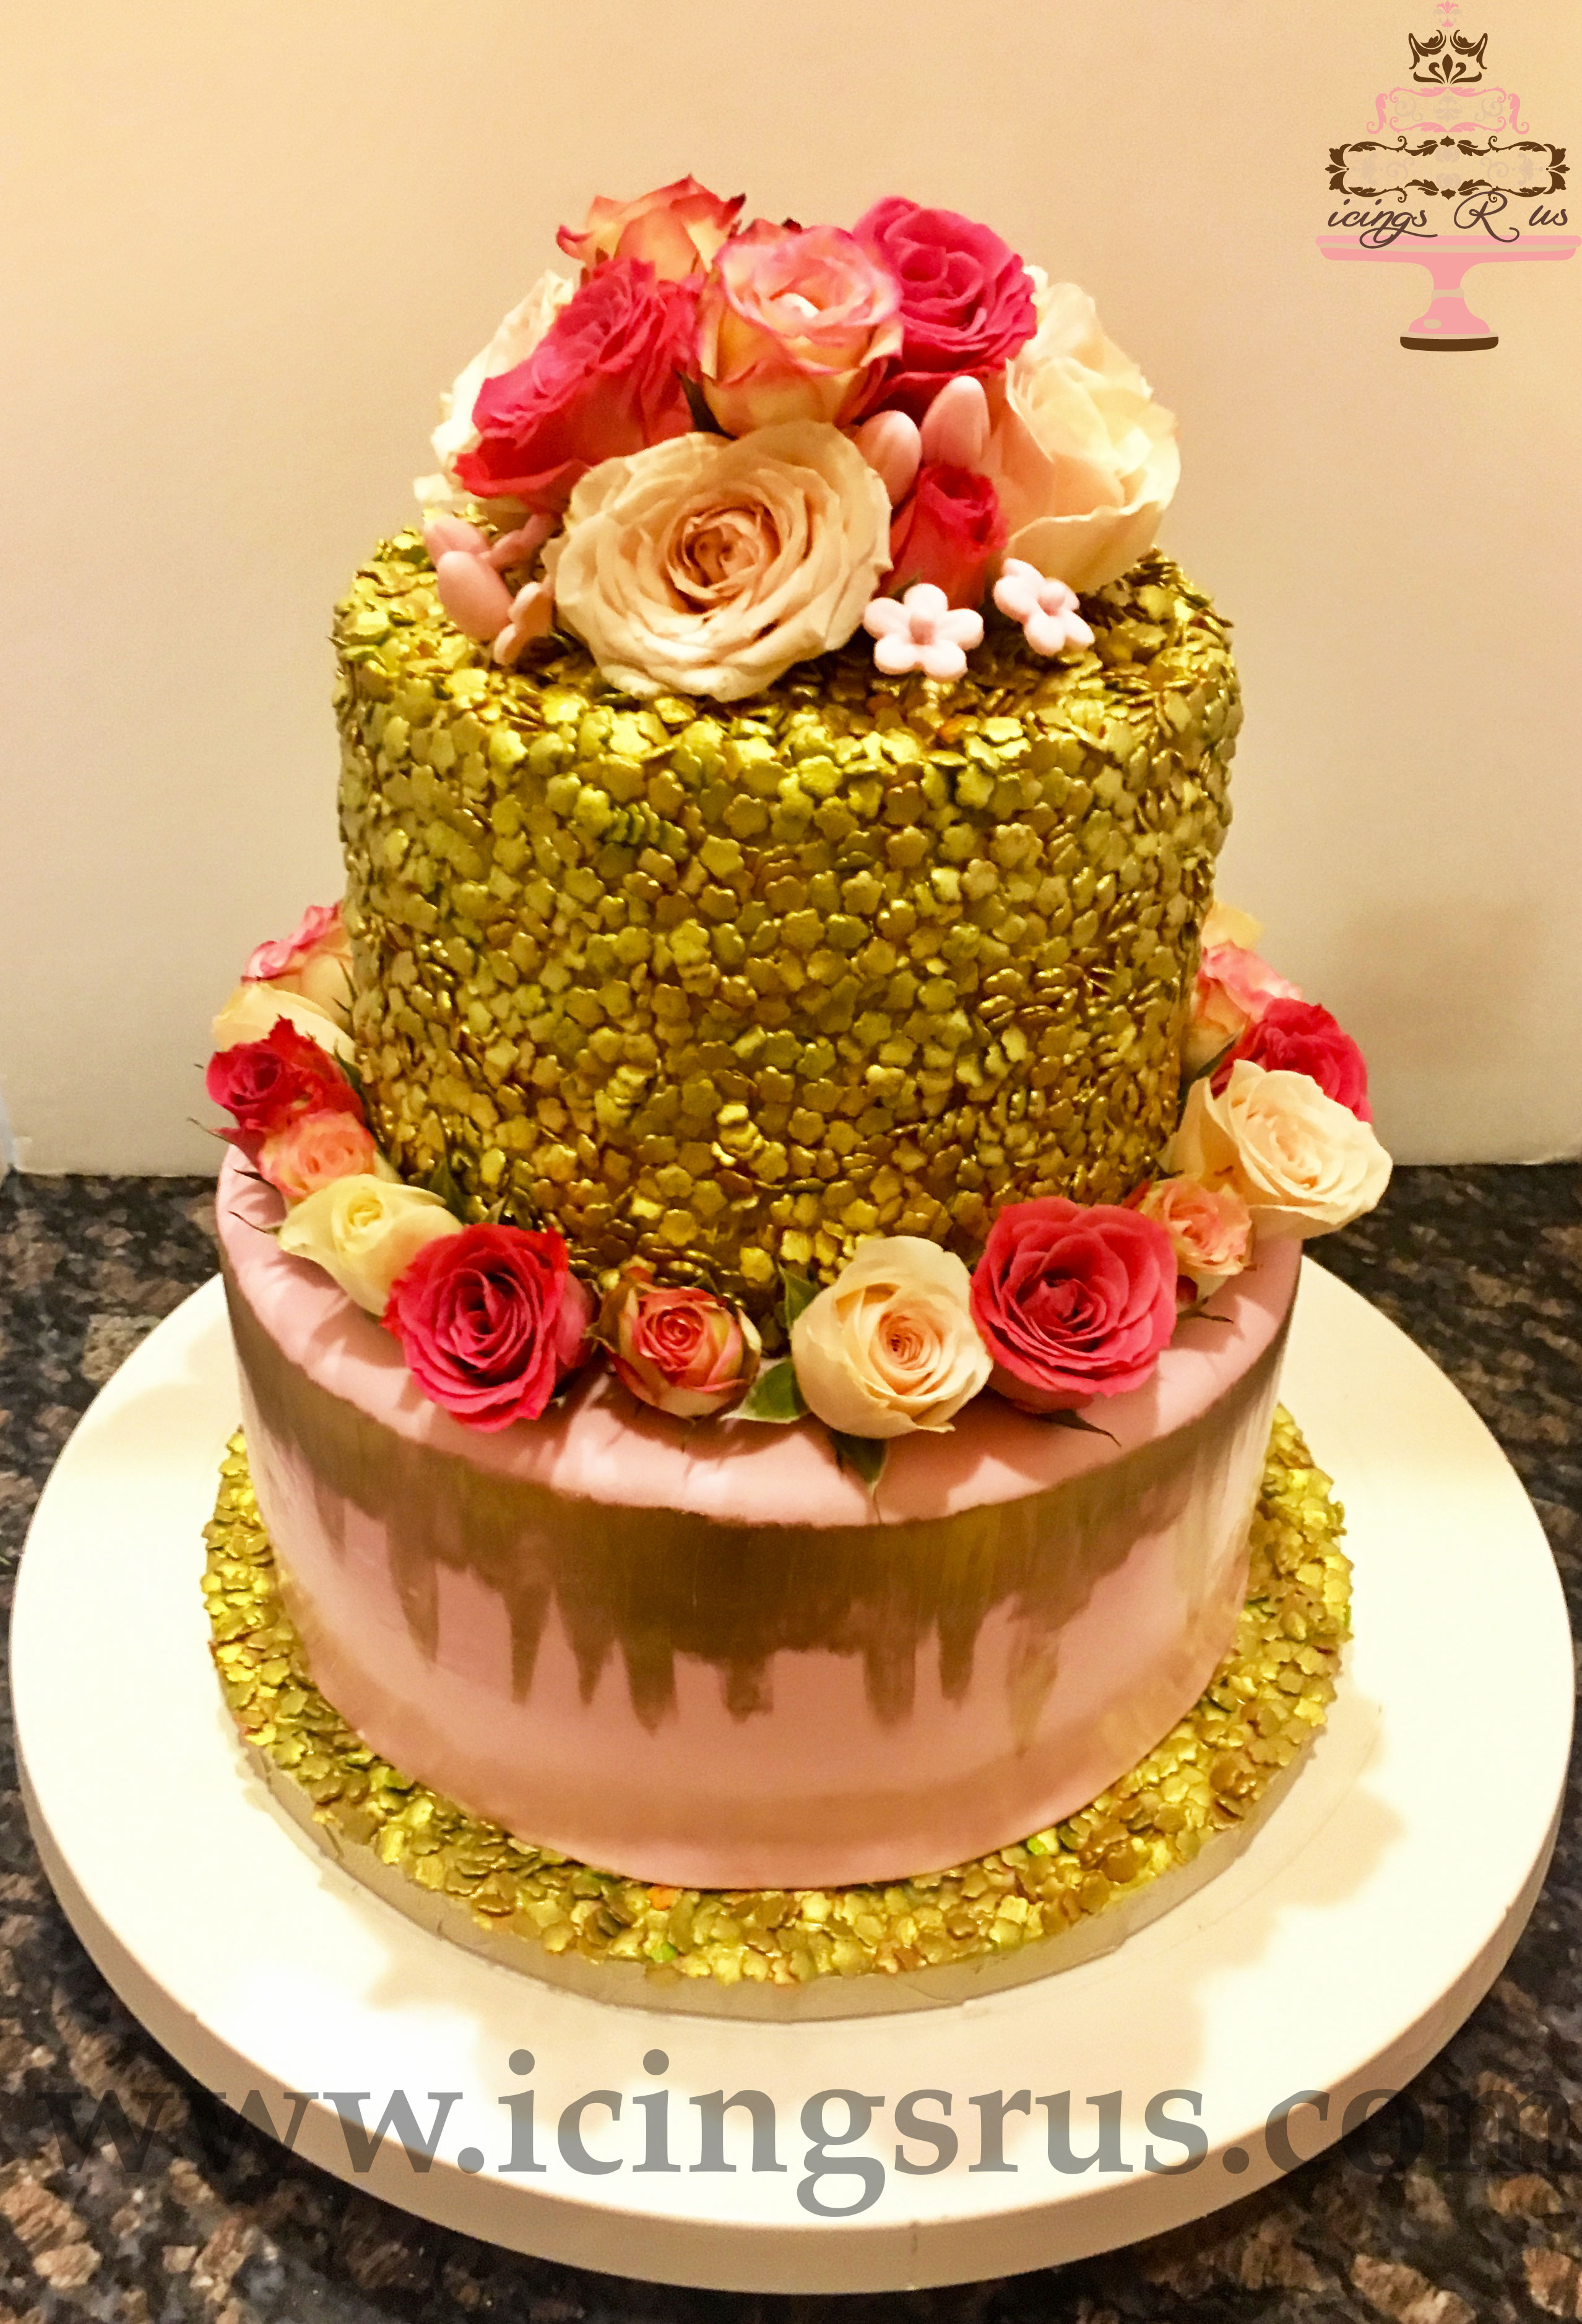 Gold Flake and Drip 2 Tier Bridal Shower Cake